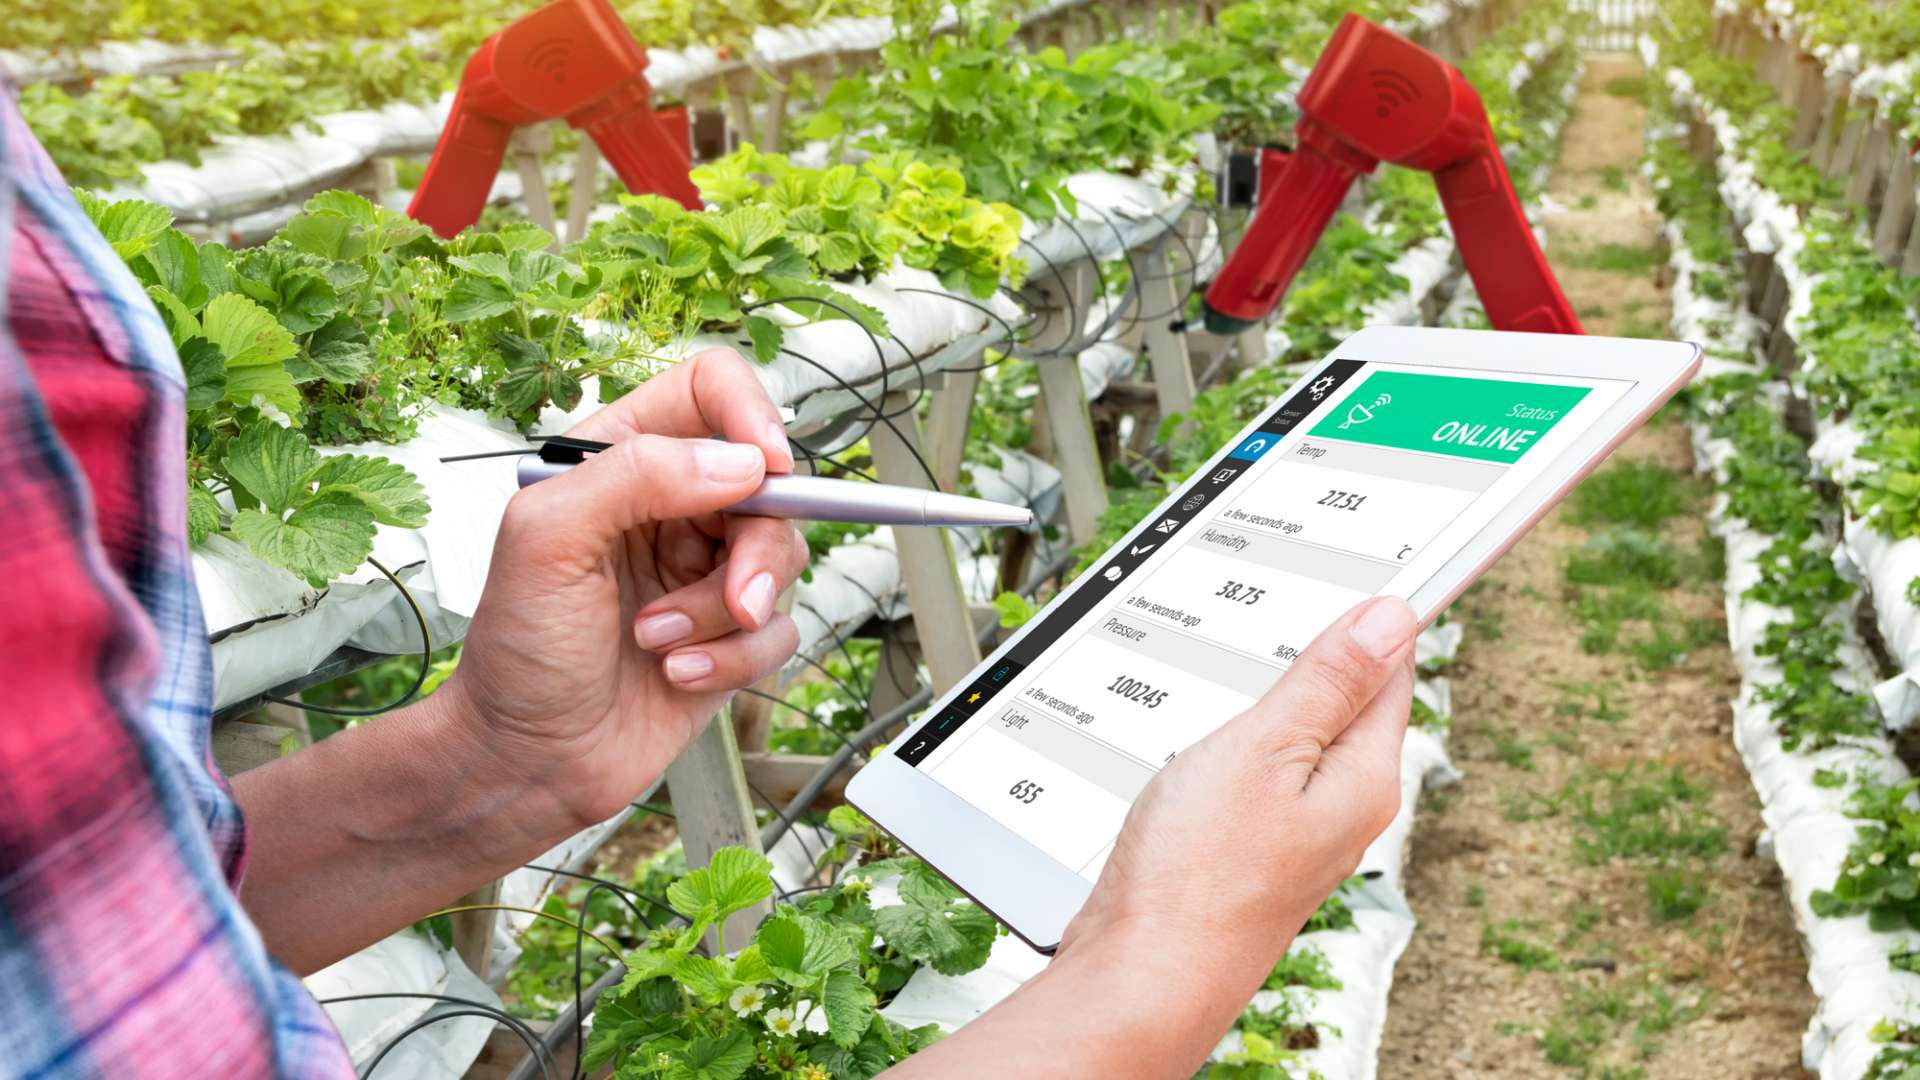 A photo of a farmer using a tablet device to check the status of crops